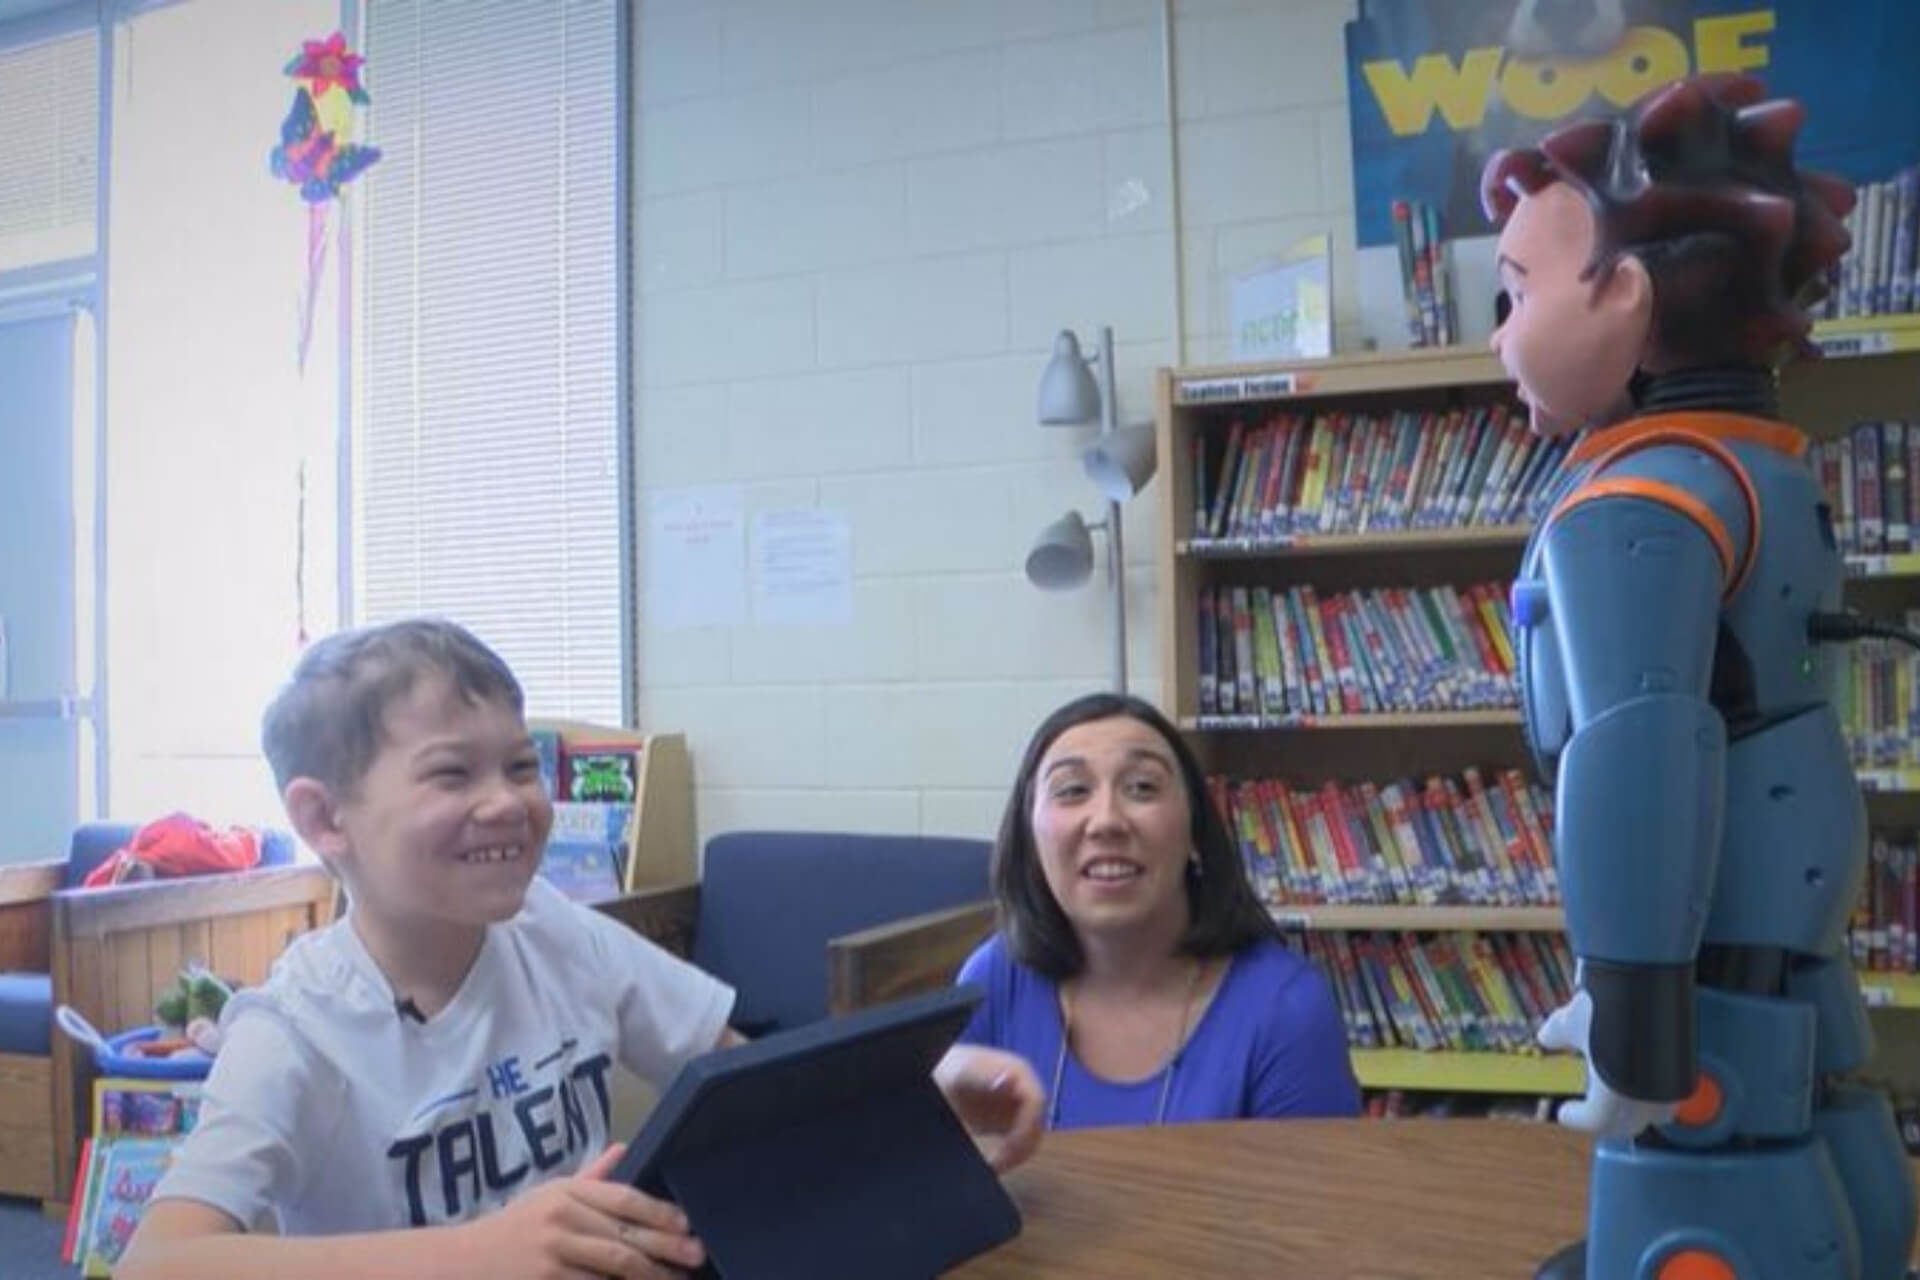 Student with autism interacts with RoboKind